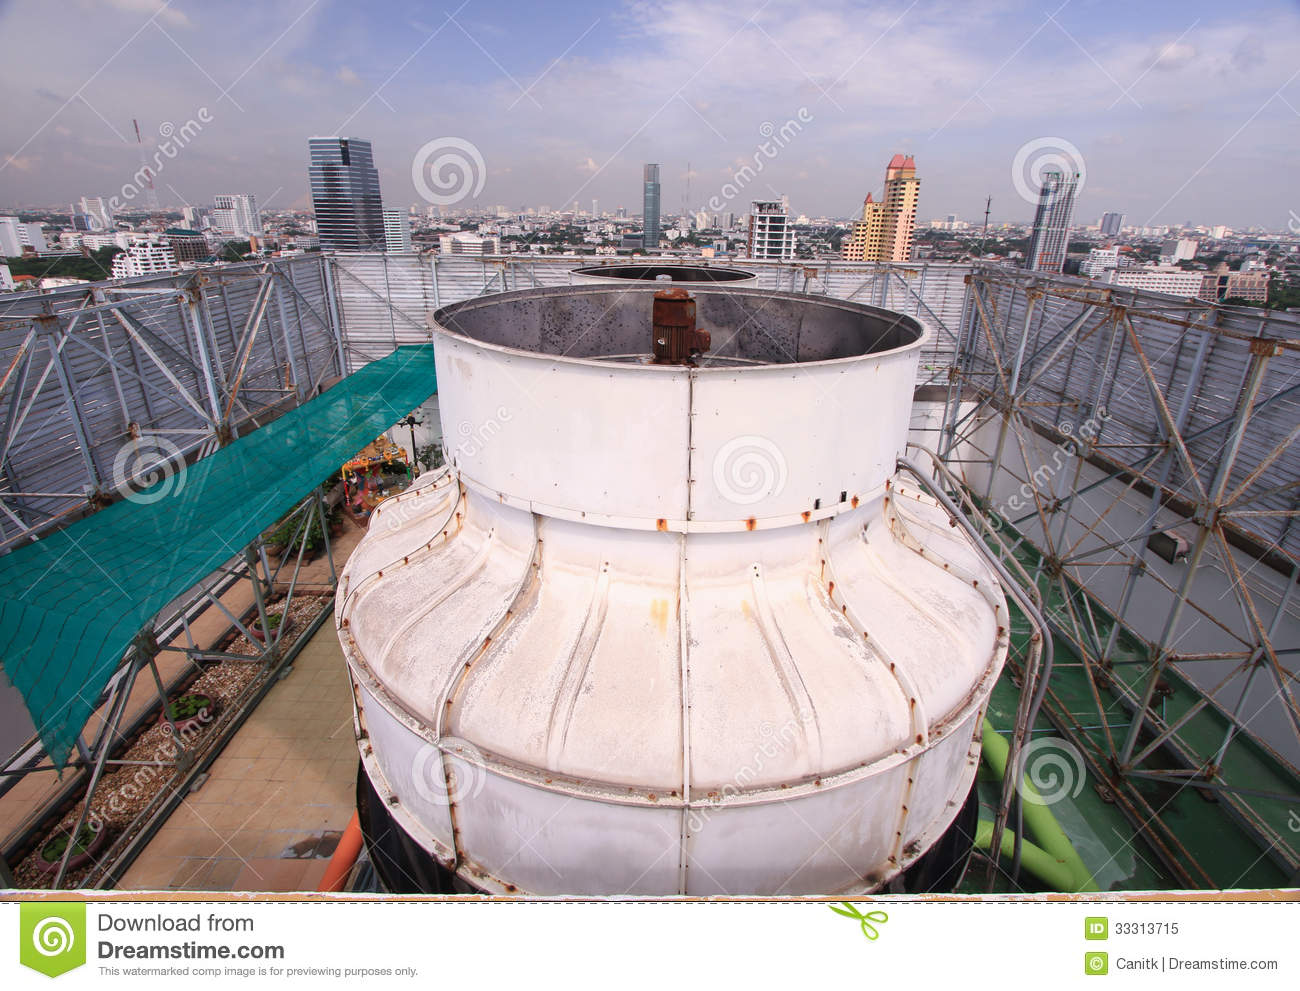 Air Coolant On Roof Of Tower Stock Image Industrial